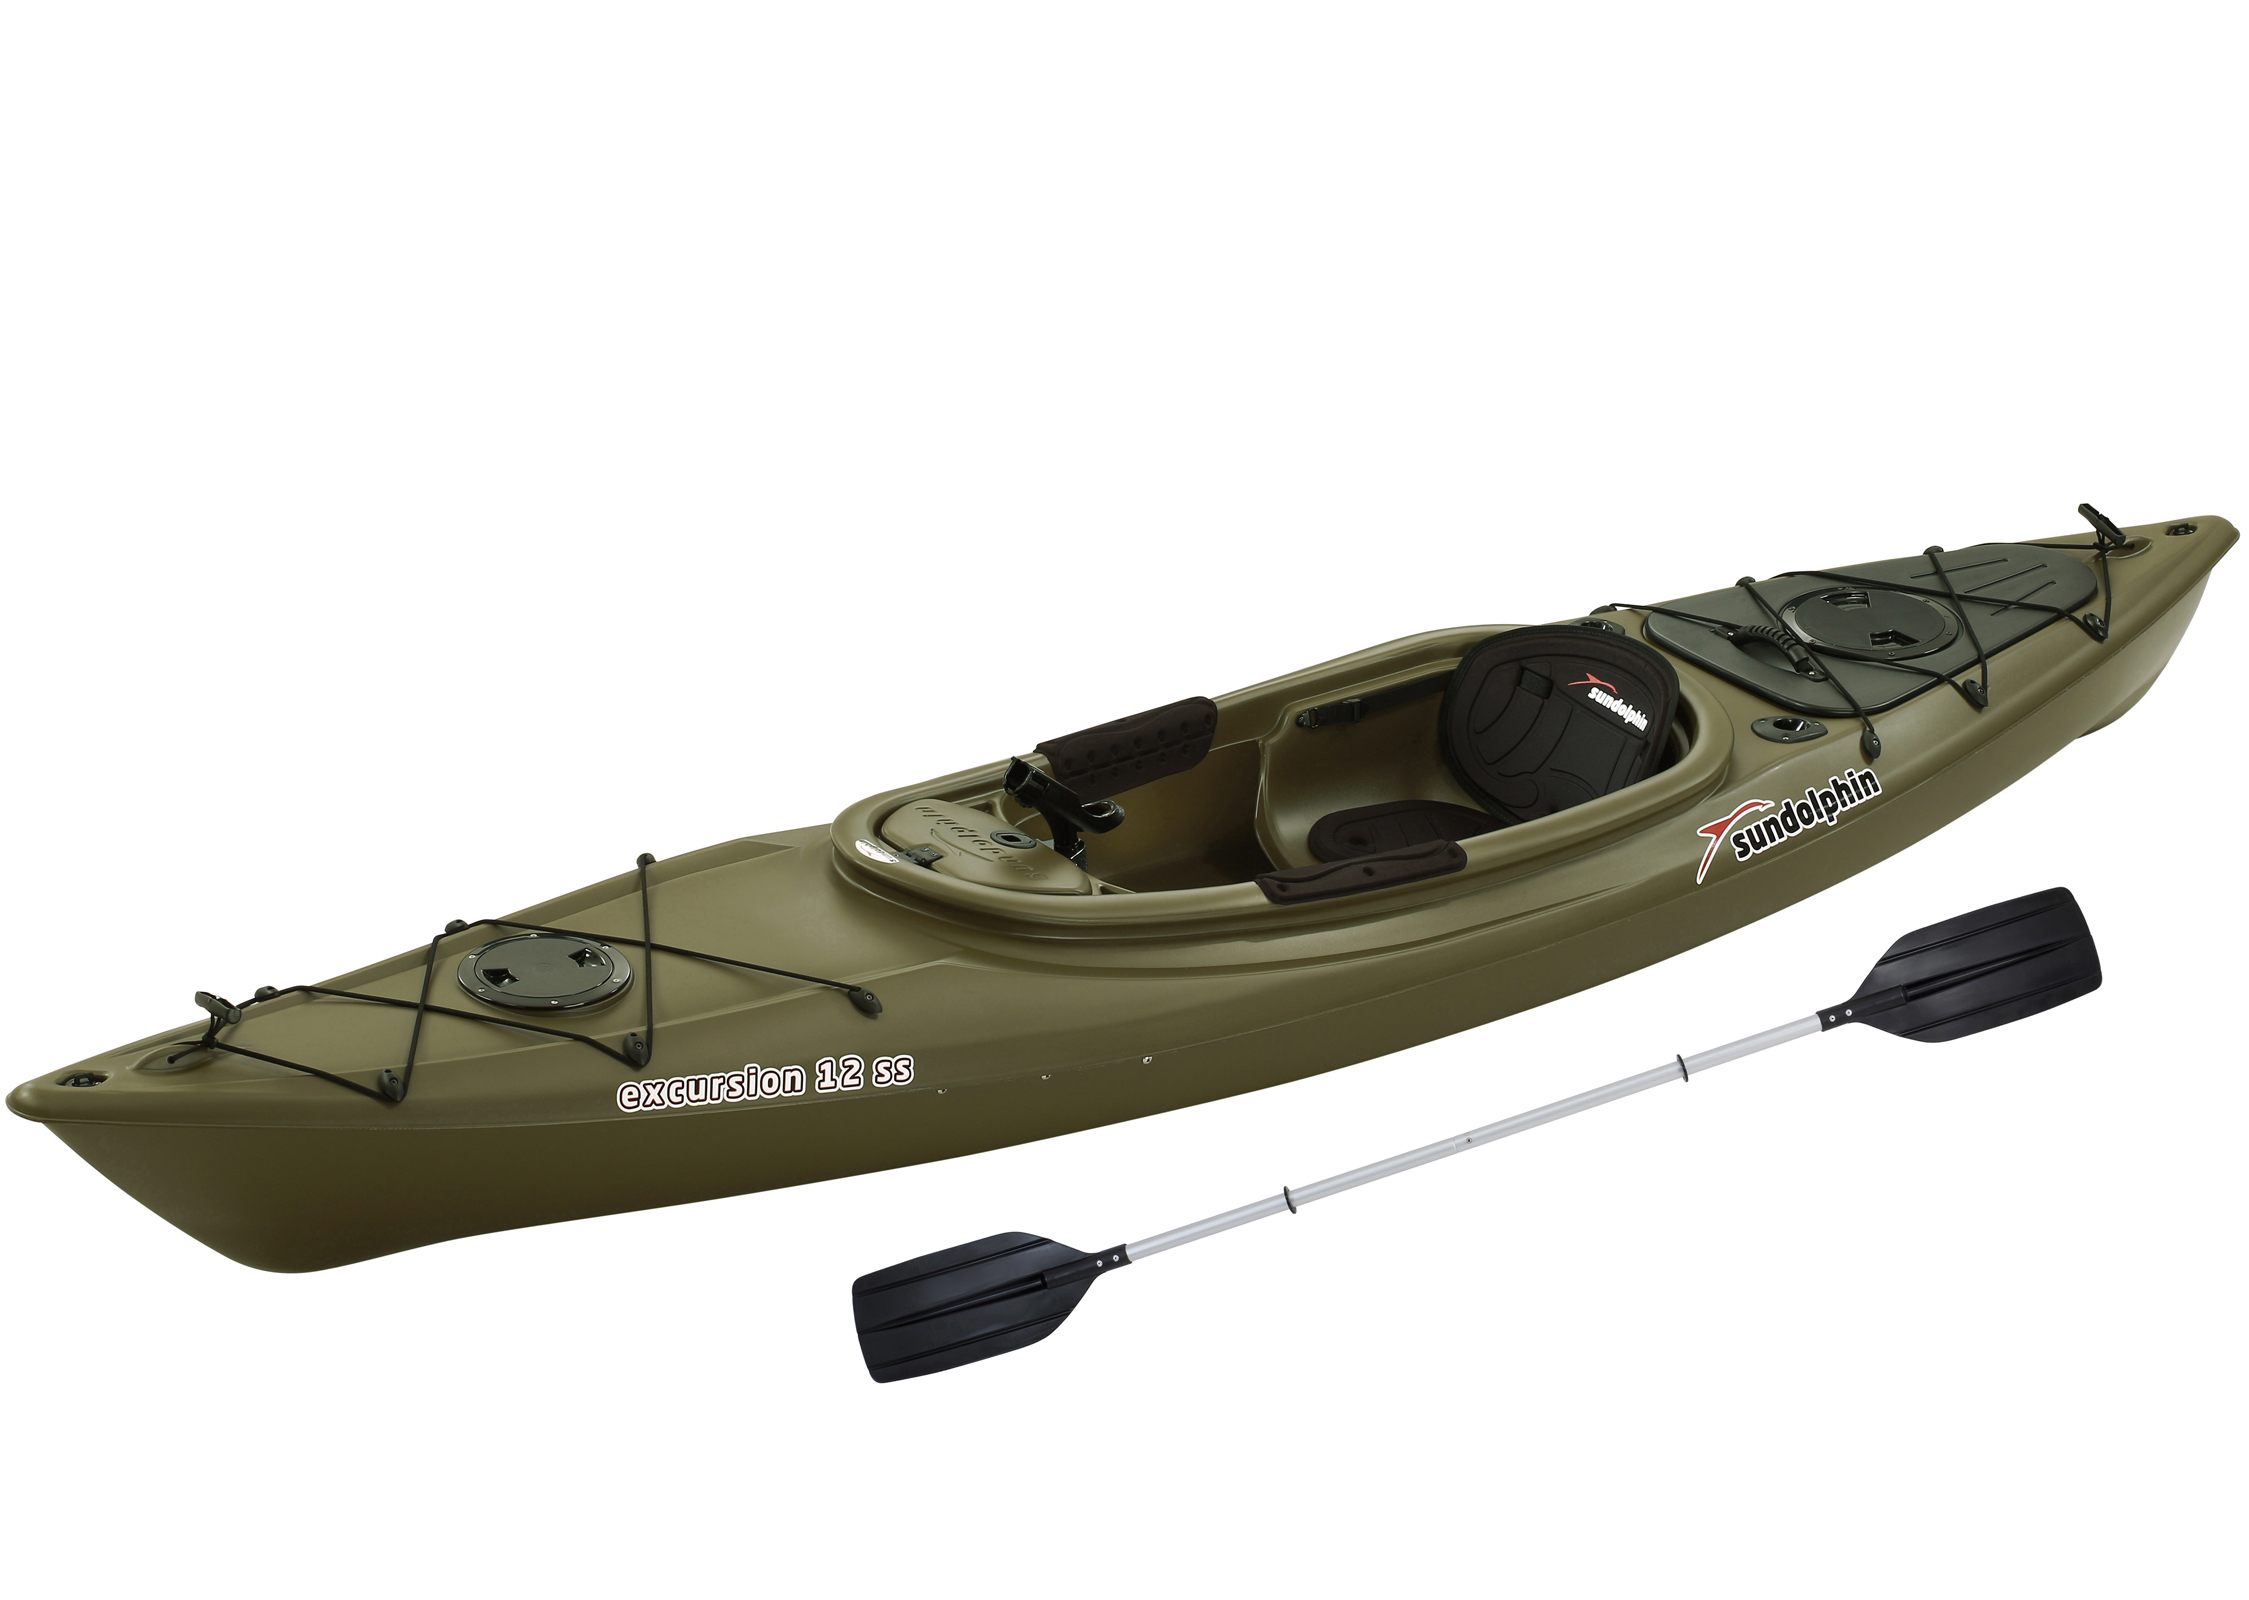 0fc24a754804 Sun Dolphin Excursion 12' Sit-In Fishing Kayak Sand, Includes Paddle -  Walmart.com